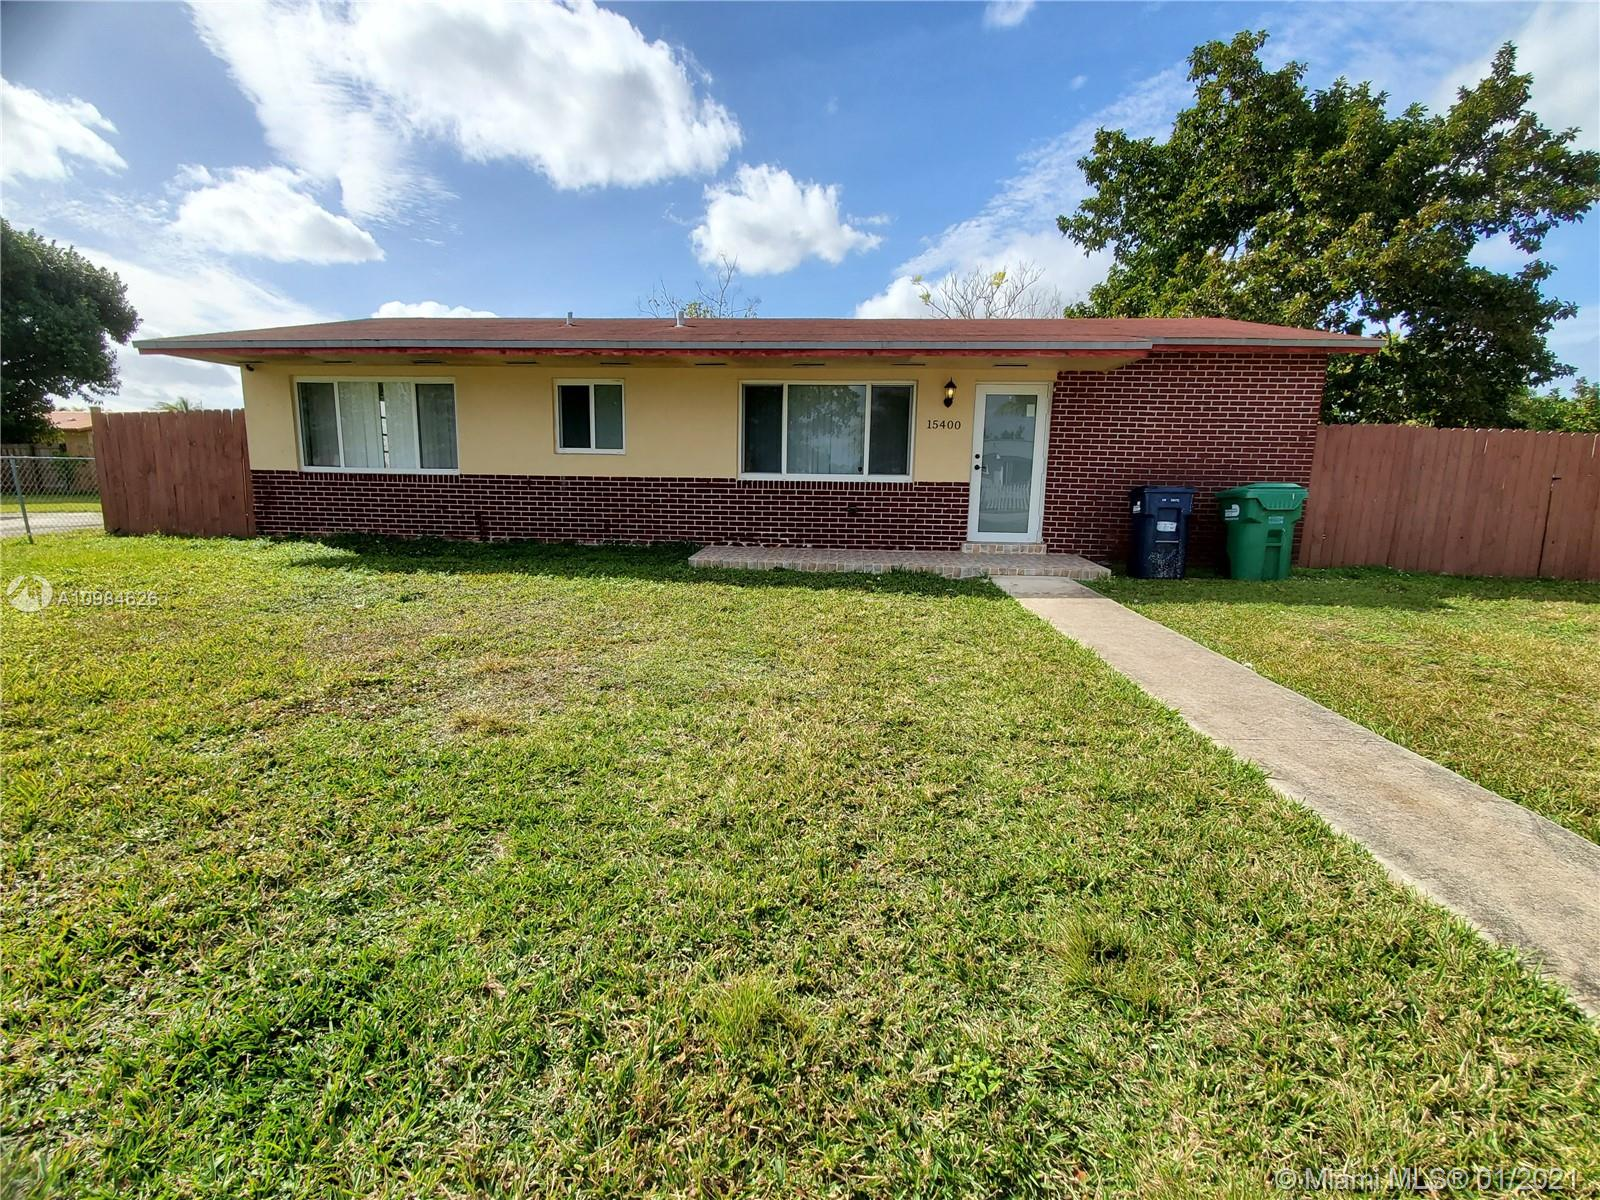 15400 SW 102nd Pl, Miami, Florida 33157, 3 Bedrooms Bedrooms, ,1 BathroomBathrooms,Residential,For Sale,15400 SW 102nd Pl,A10984626